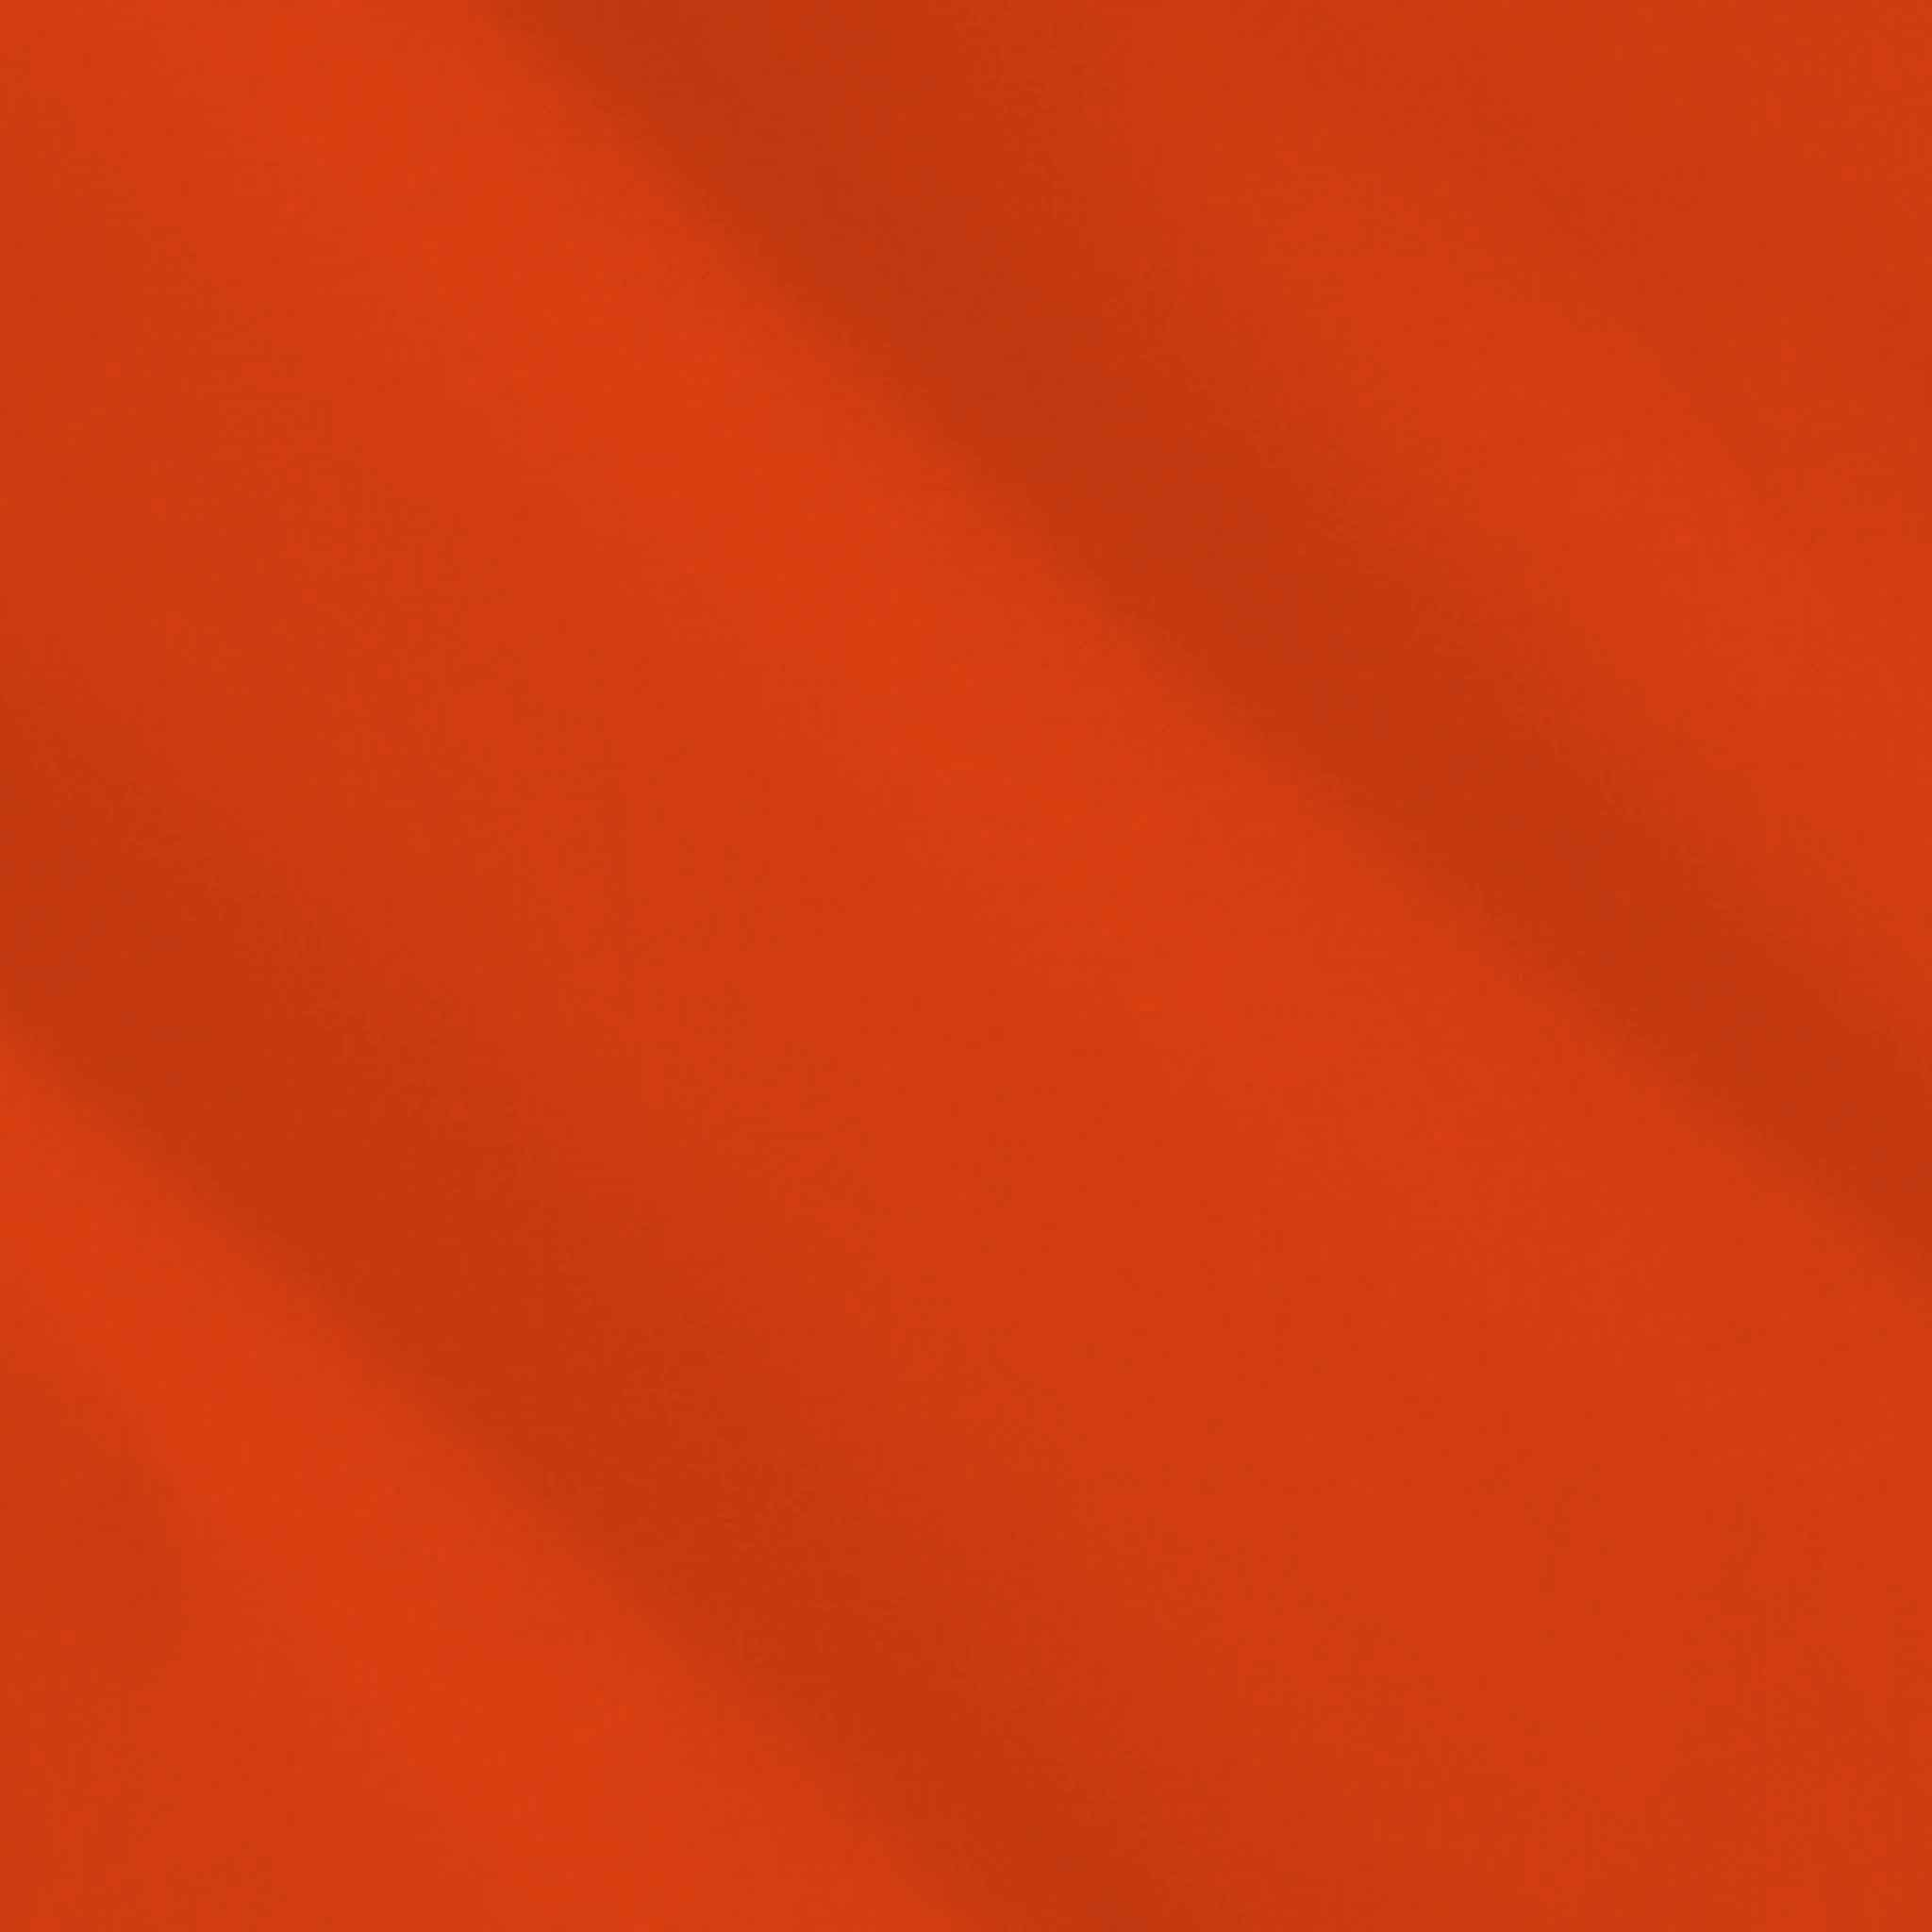 Vienna Orange Cotton Fabric by Makower 2000/U05 from their Spectrum Basics Collection - Fabric and Ribbon